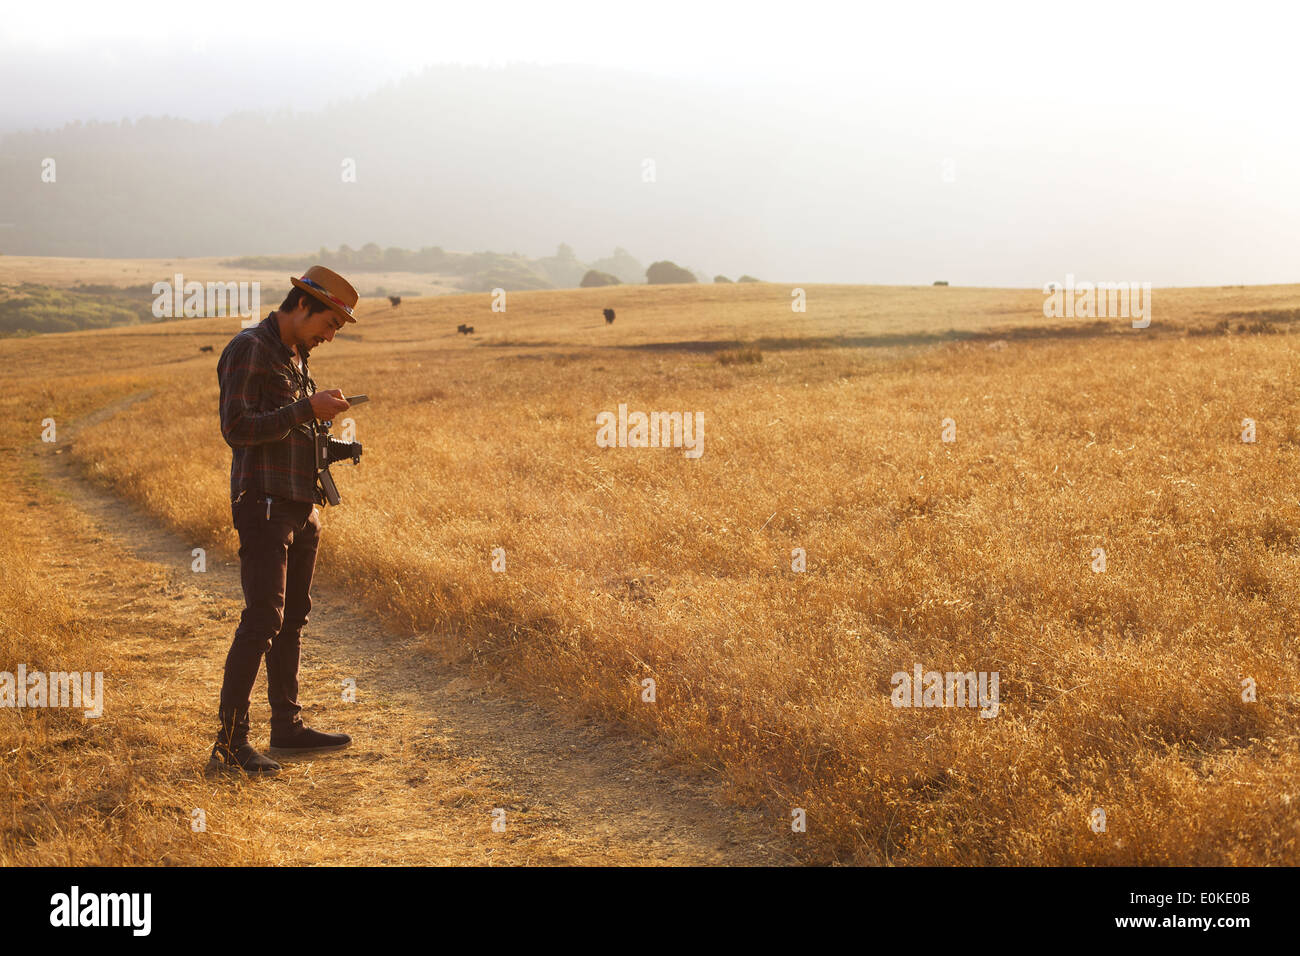 A man stands in a golden colored field and studies a picture from his land camera. - Stock Image